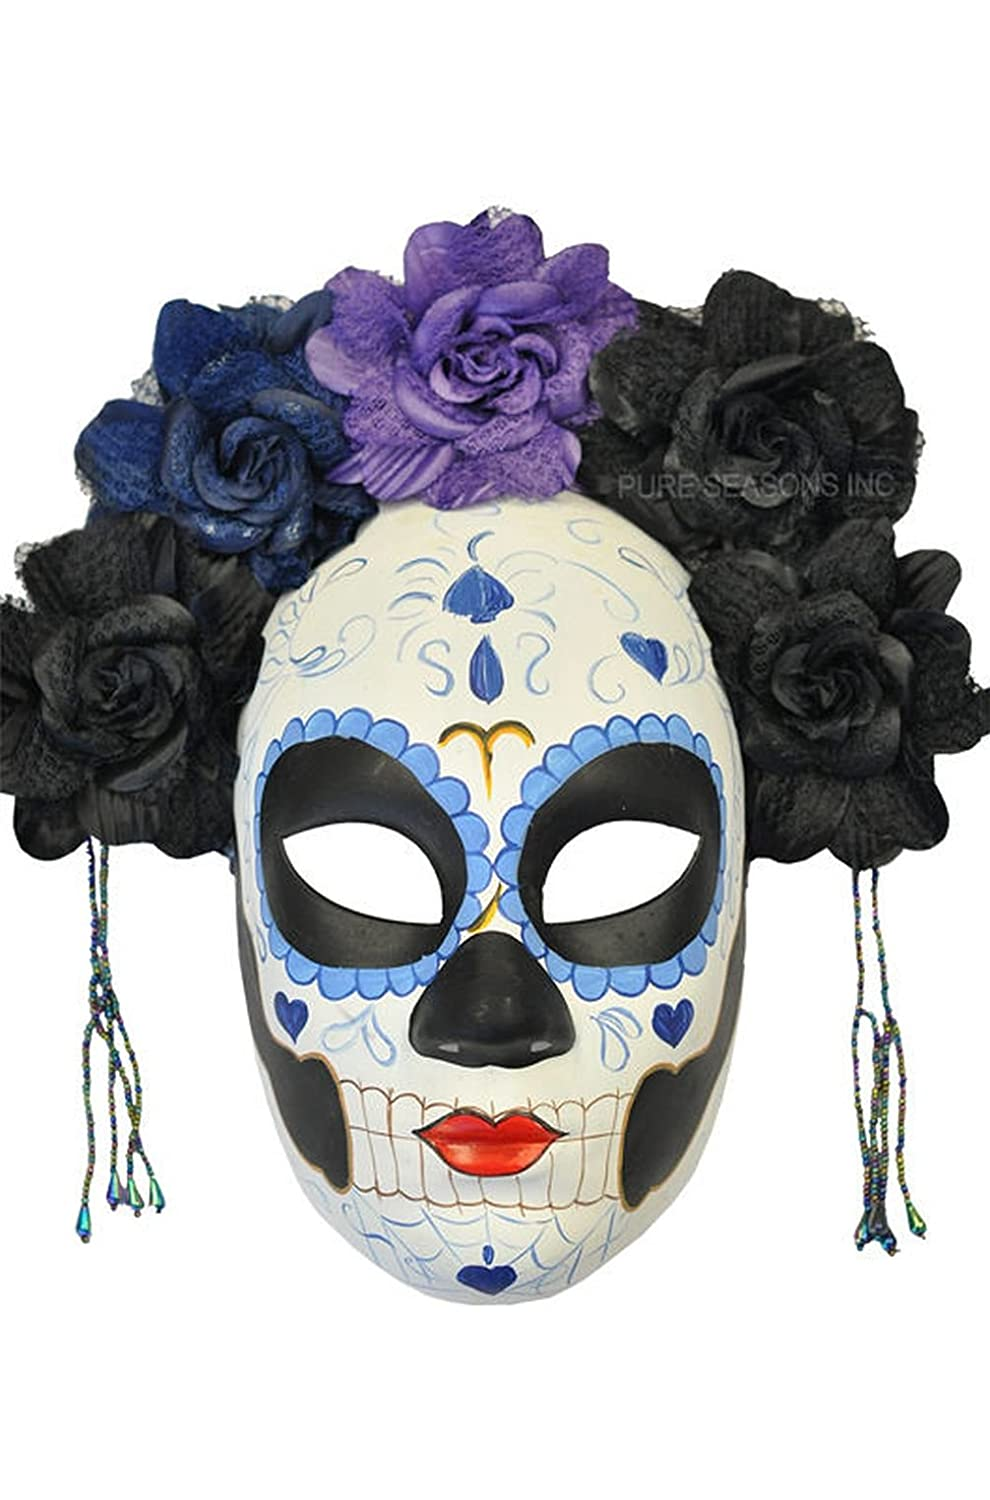 Mememall Fashion La Calavera Catrina Skeleton Skull Masquerade Mask (Black/Blue)